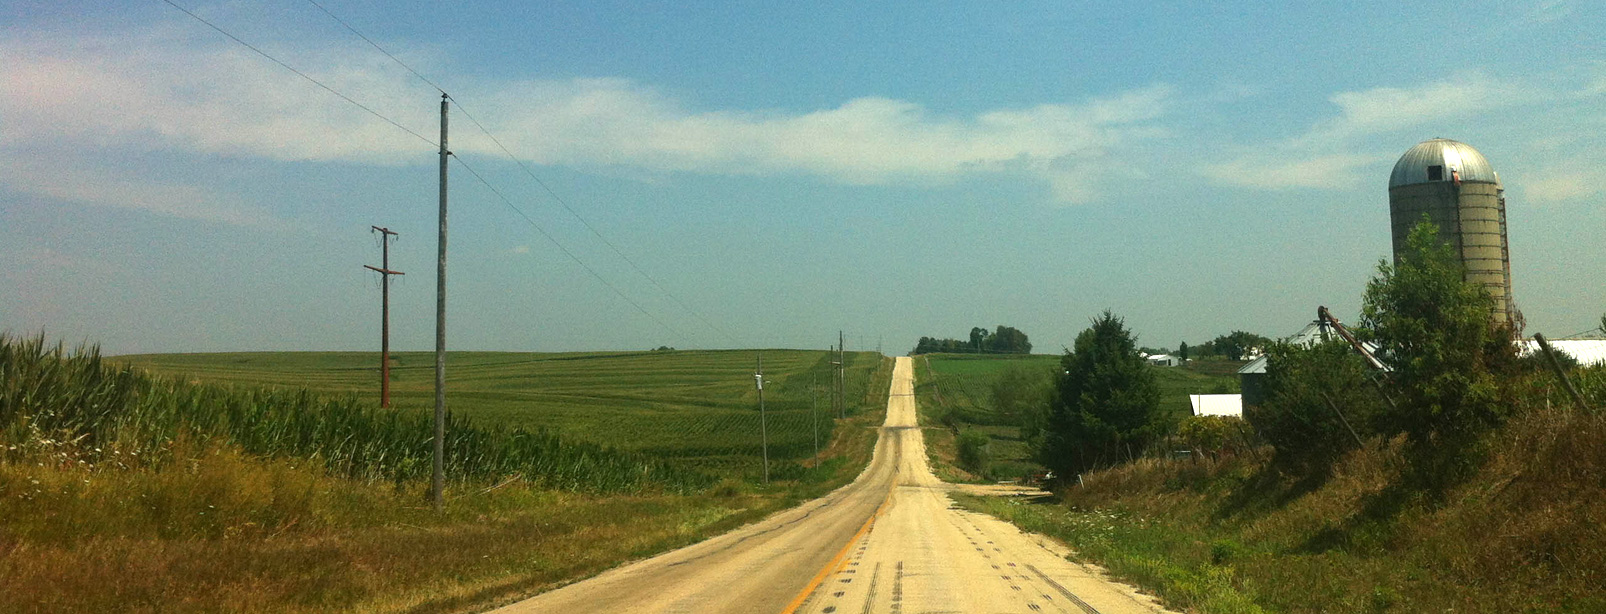 County Road, Outside of Dubuque